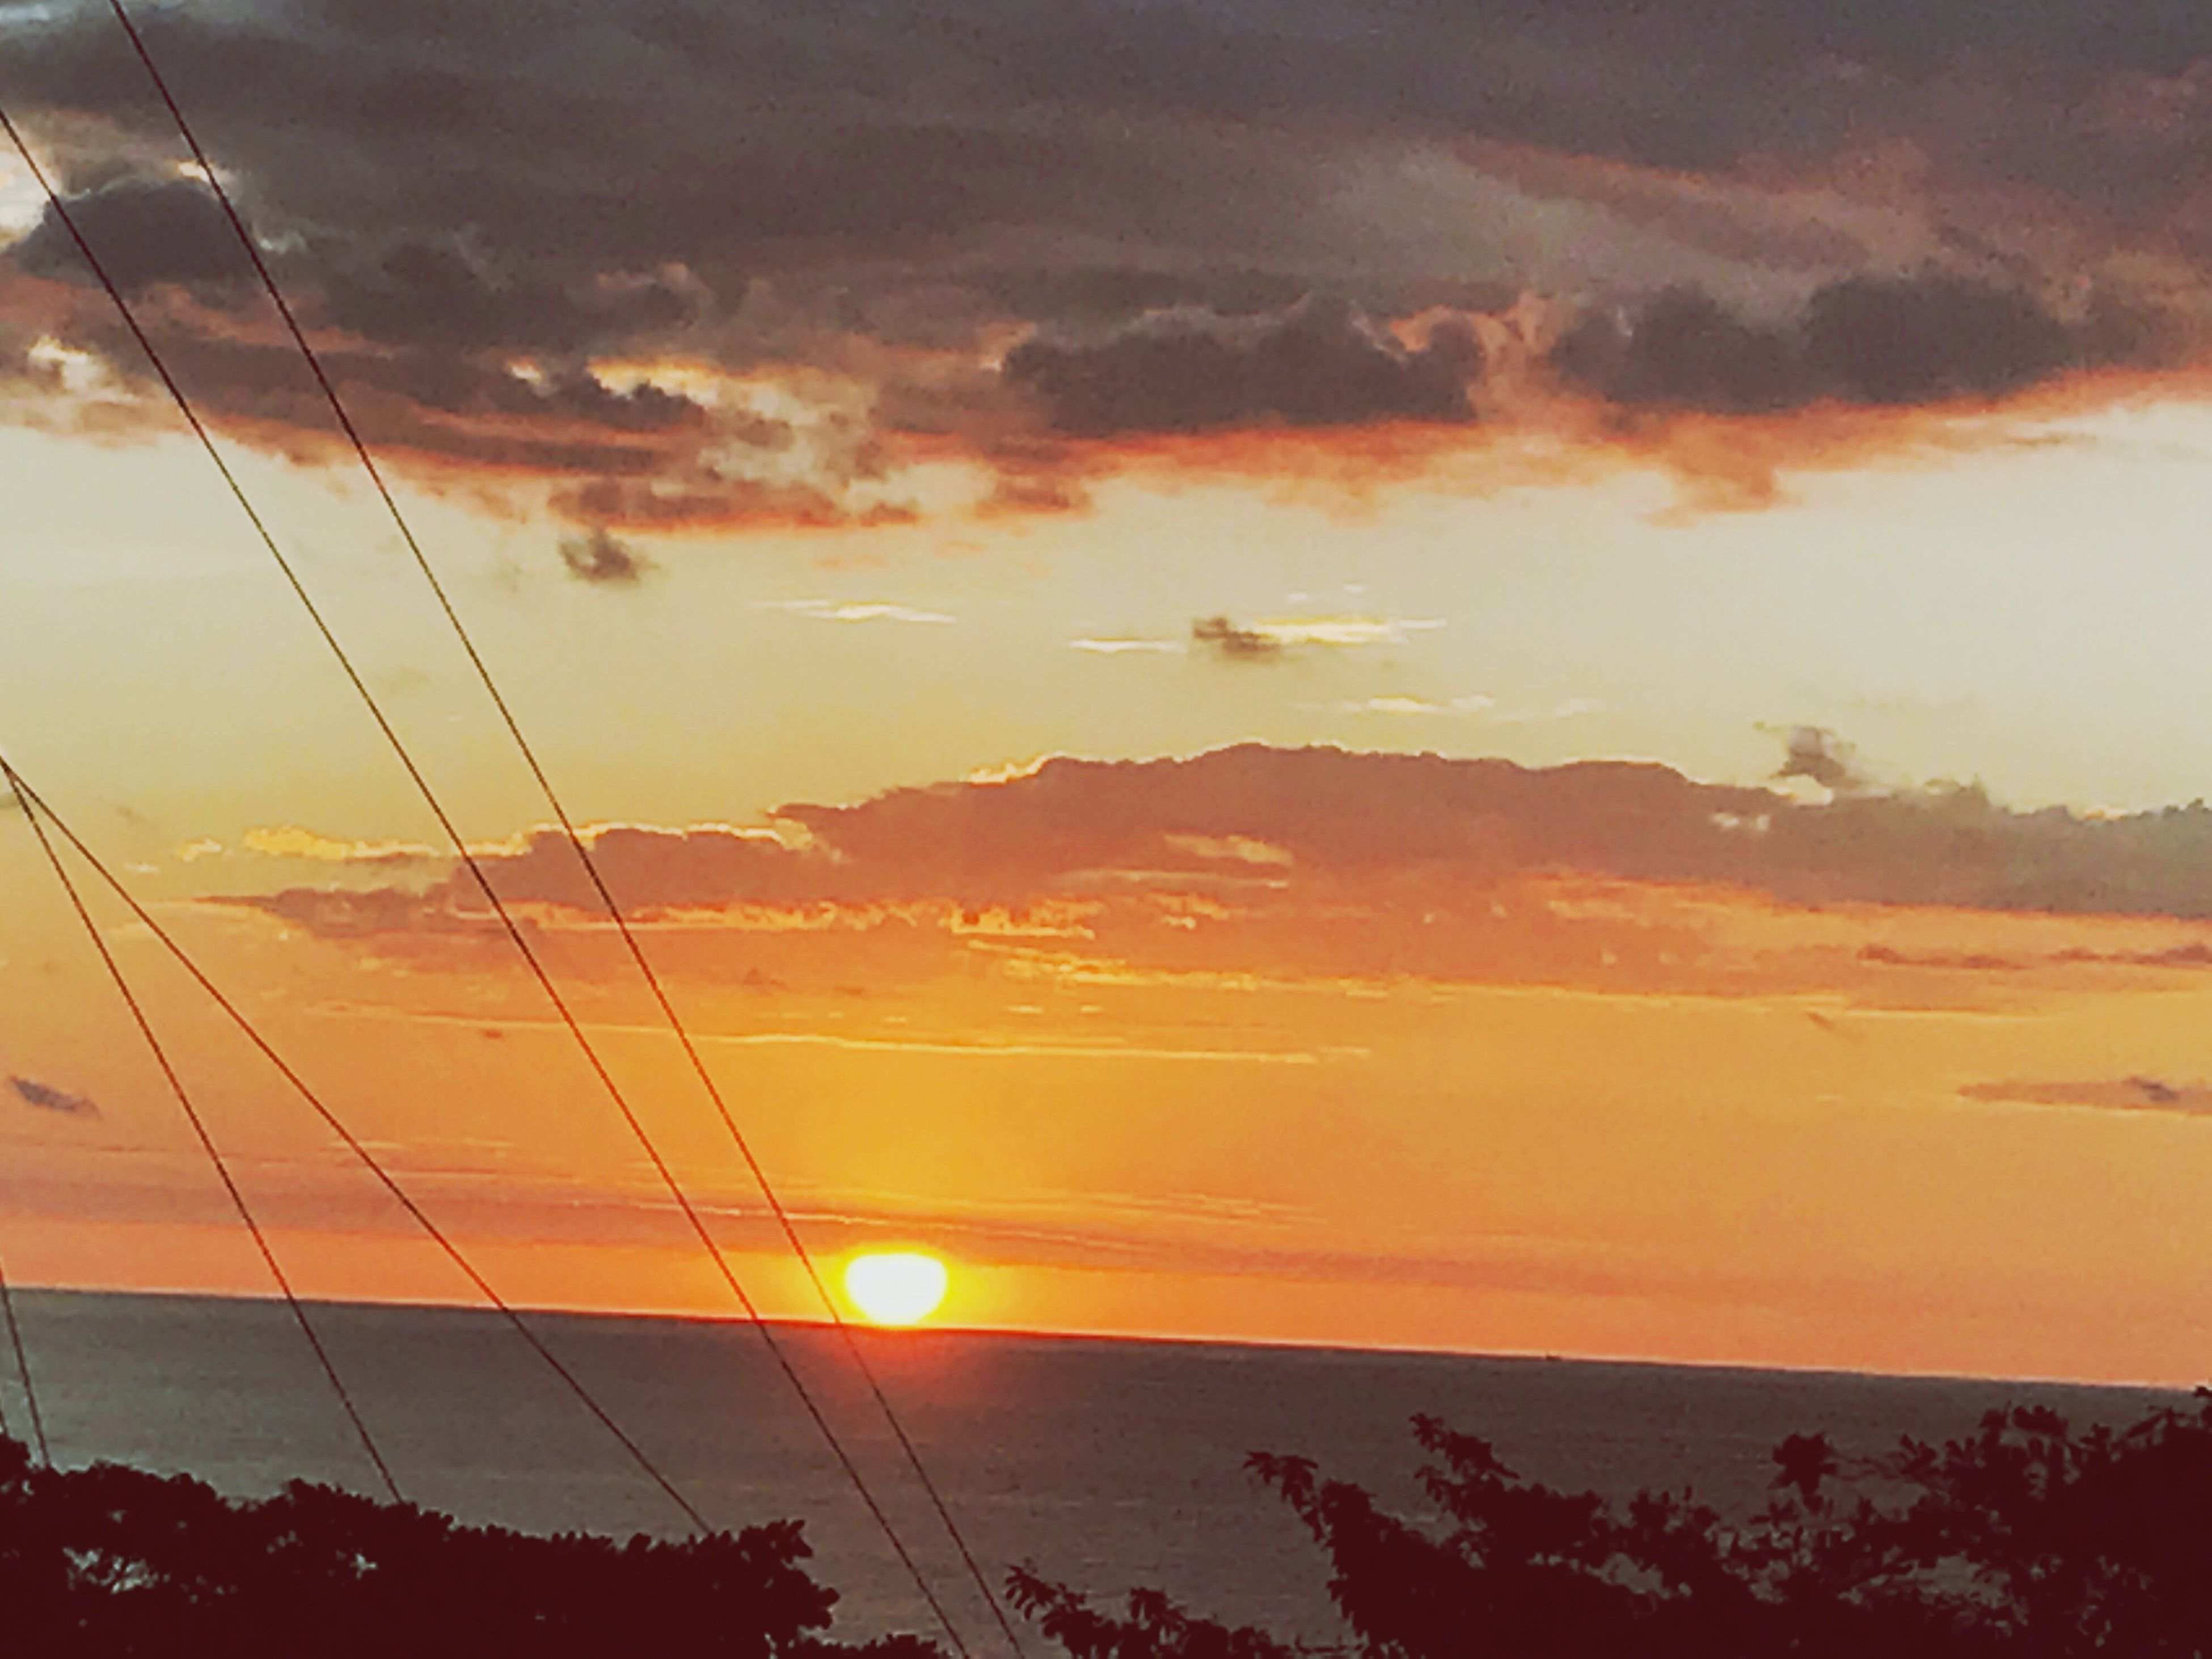 sunset, cloud - sky, sky, electricity, scenics, beauty in nature, power line, nature, no people, power supply, low angle view, cable, sunbeam, electricity pylon, outdoors, day